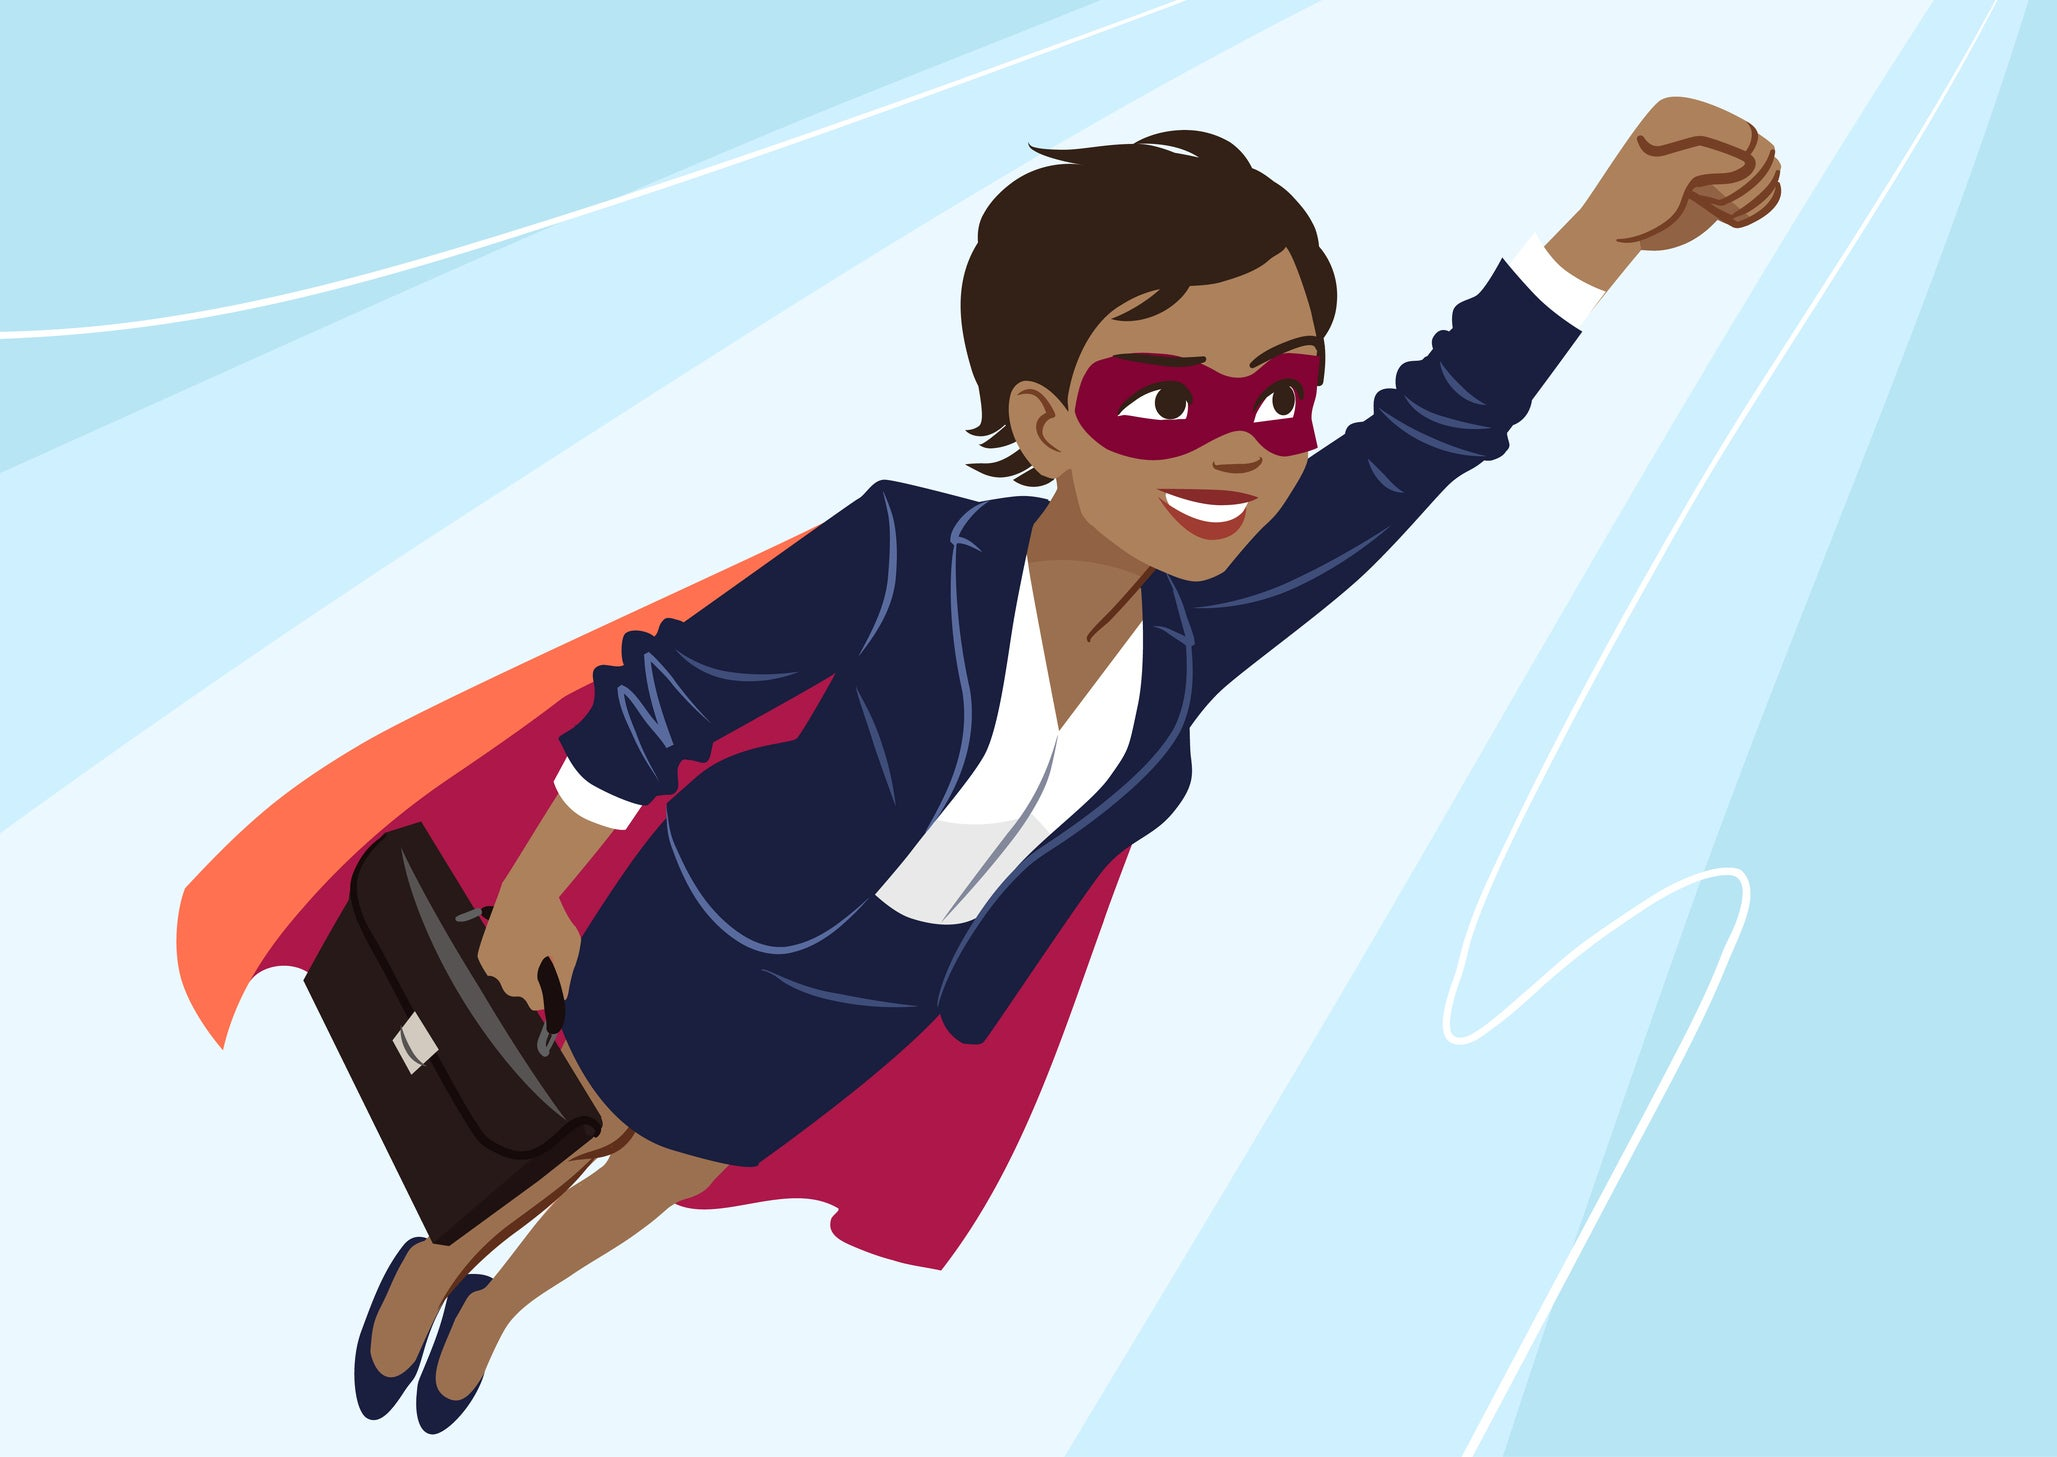 Illustration of a woman in a business suit and cape, who is also holding a briefcase, flying through the air.